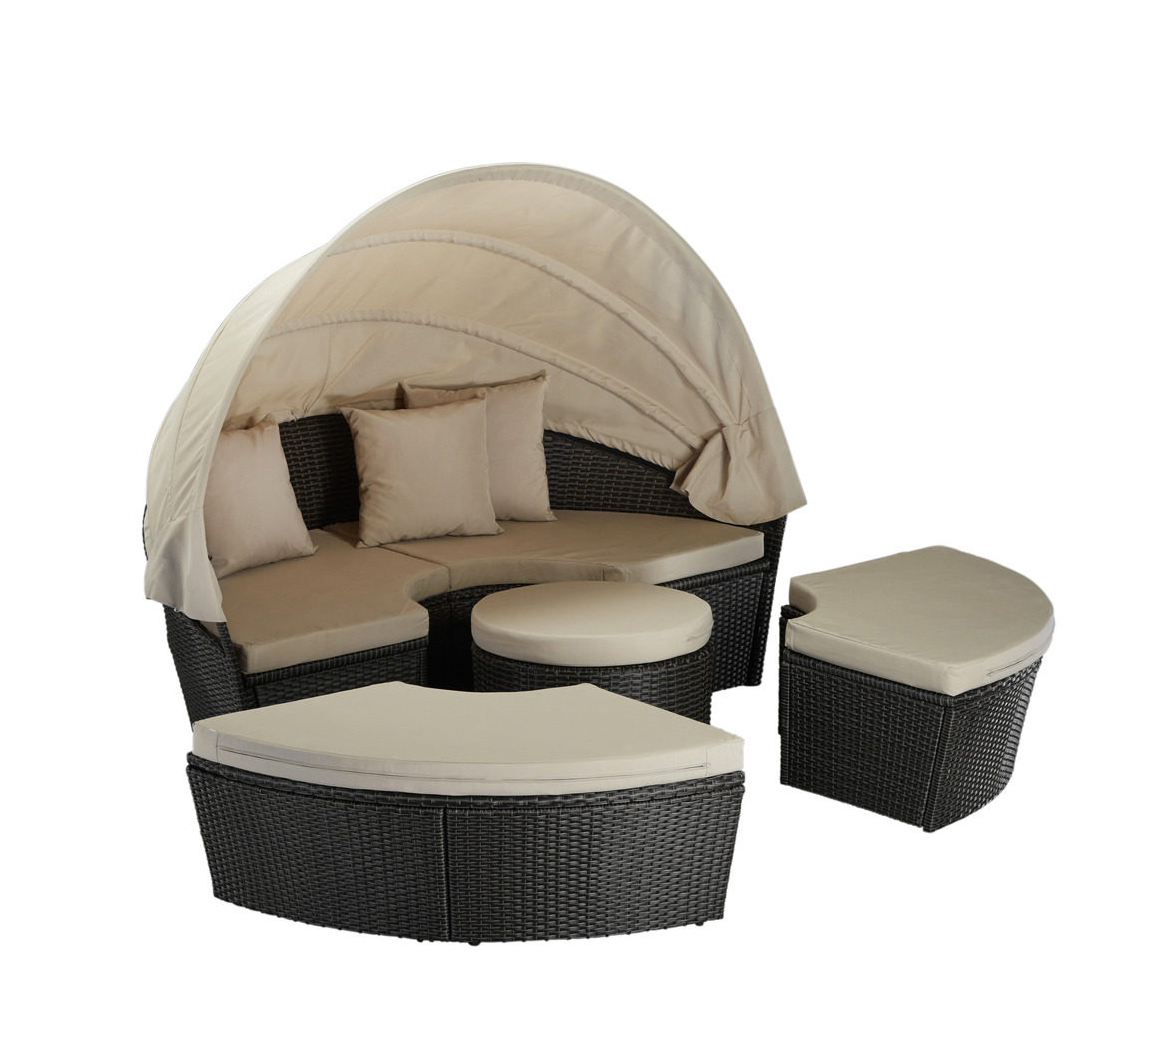 loungebett gartenlounge sitzgruppe dach auflagen polyrattan 7150404 ebay. Black Bedroom Furniture Sets. Home Design Ideas